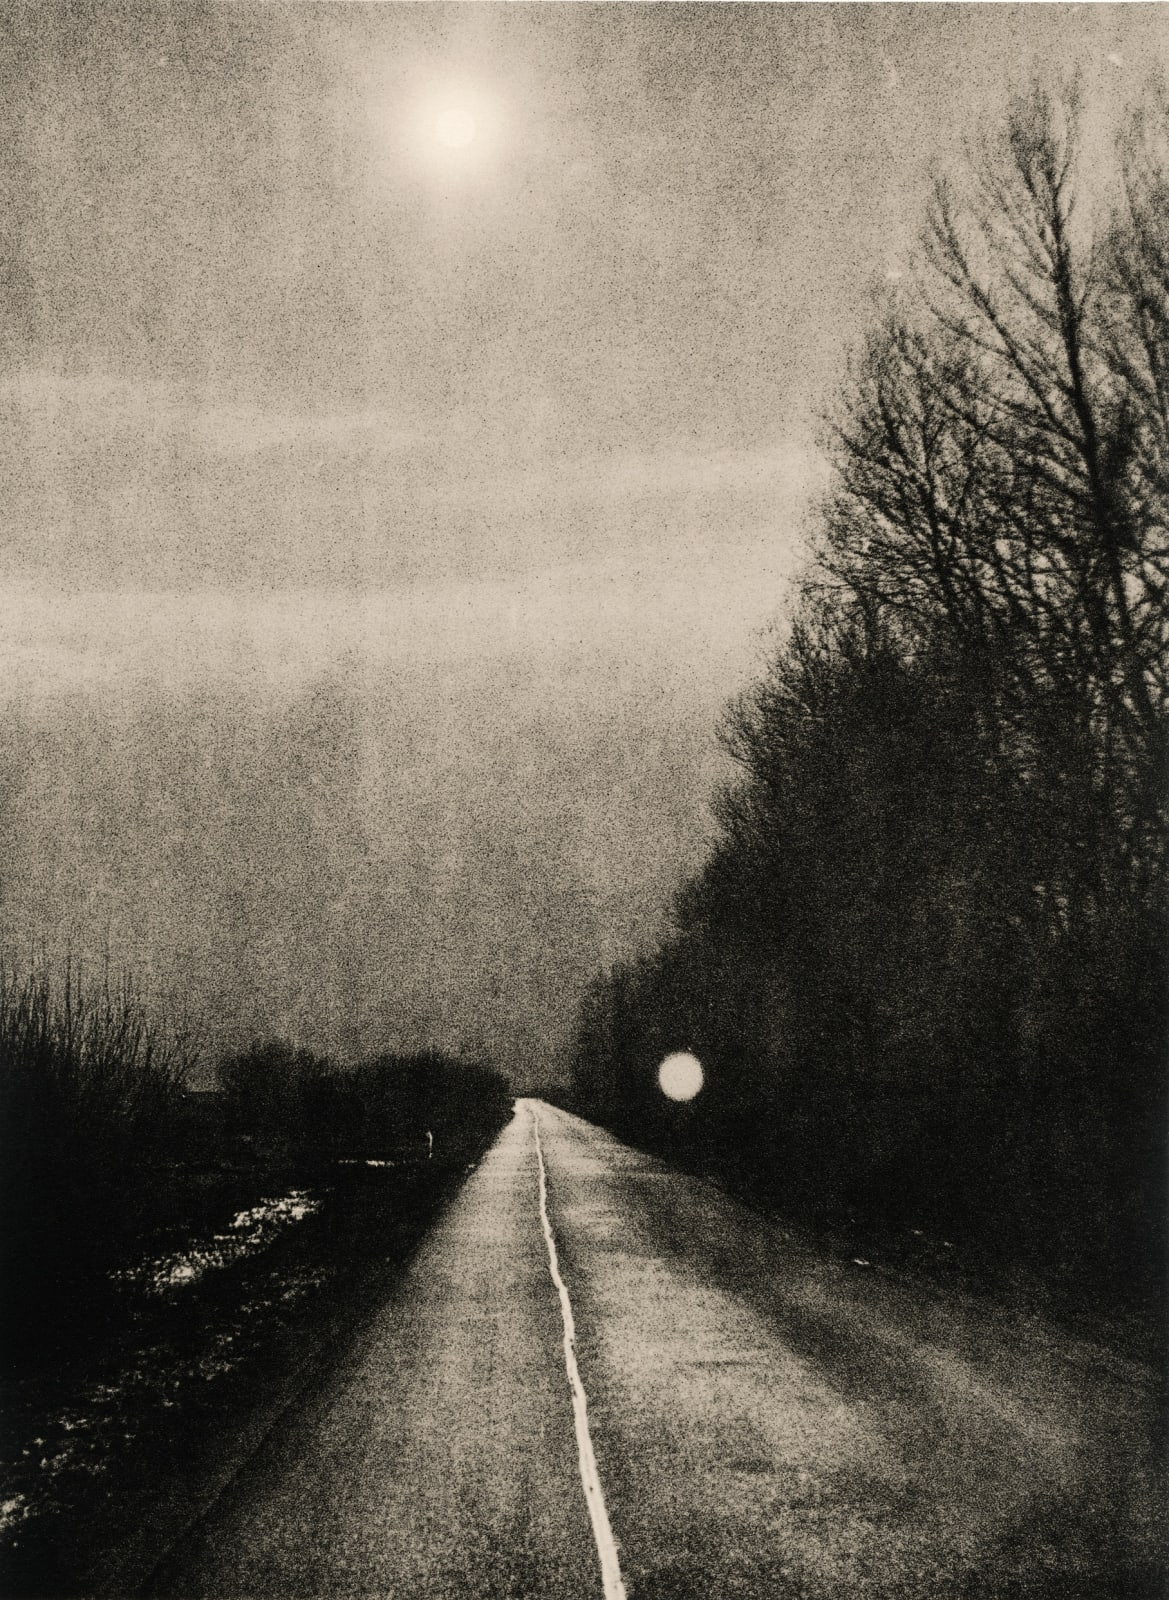 Andrej Lamut, The Pathway, 2017